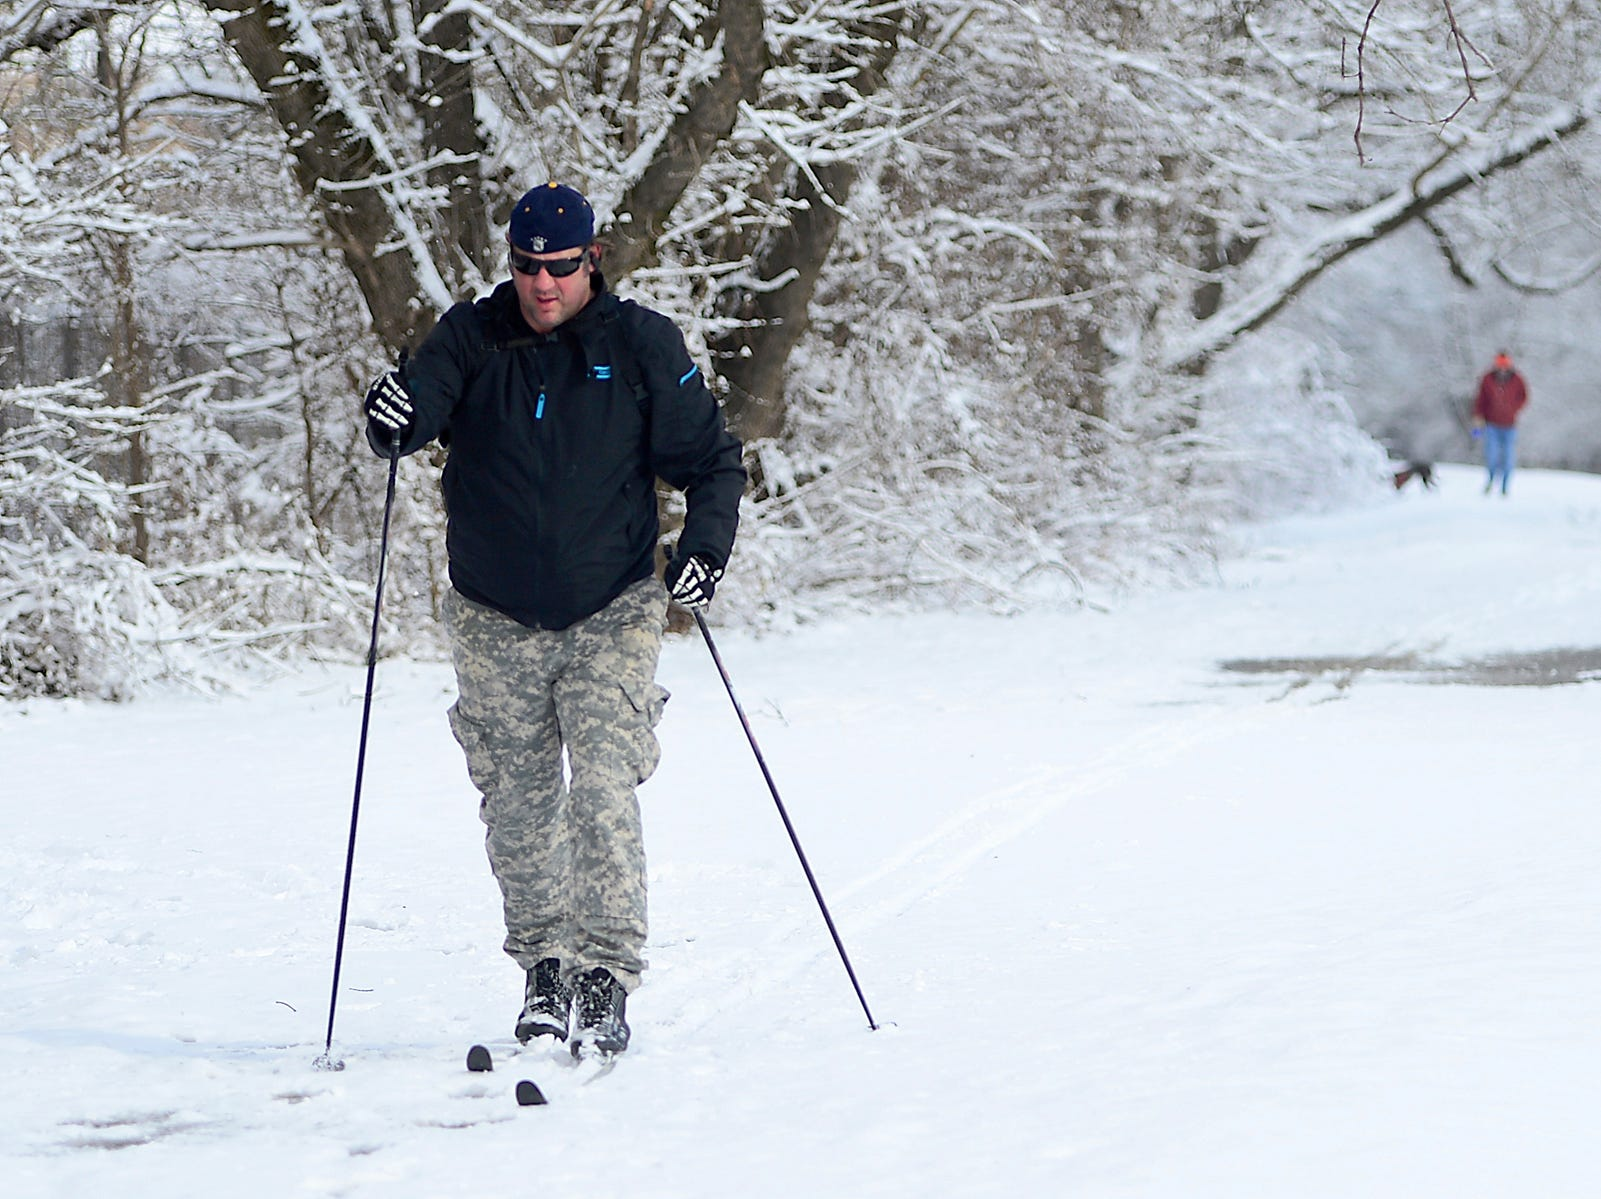 Chad Cowles of Falling Waters, W.Va., skis on the towpath of the Chesapeake and Ohio Canal in Williamsport, Md. on March 4, 2019.